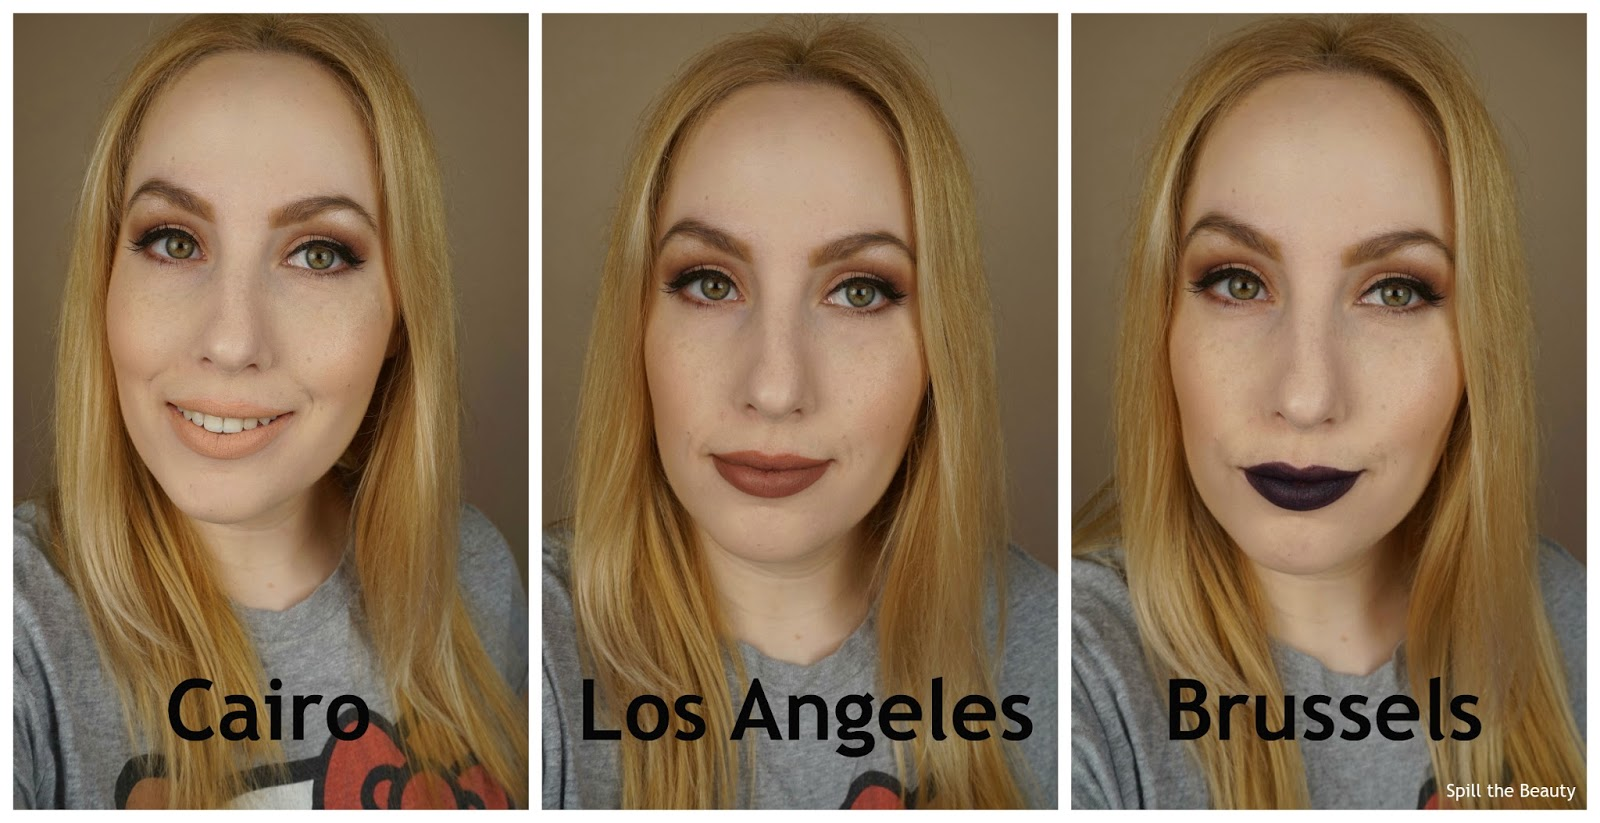 NYX Soft Matte Lip Cream 'Cairo', 'Los Angeles', 'Brussels' - Review, and Swatches